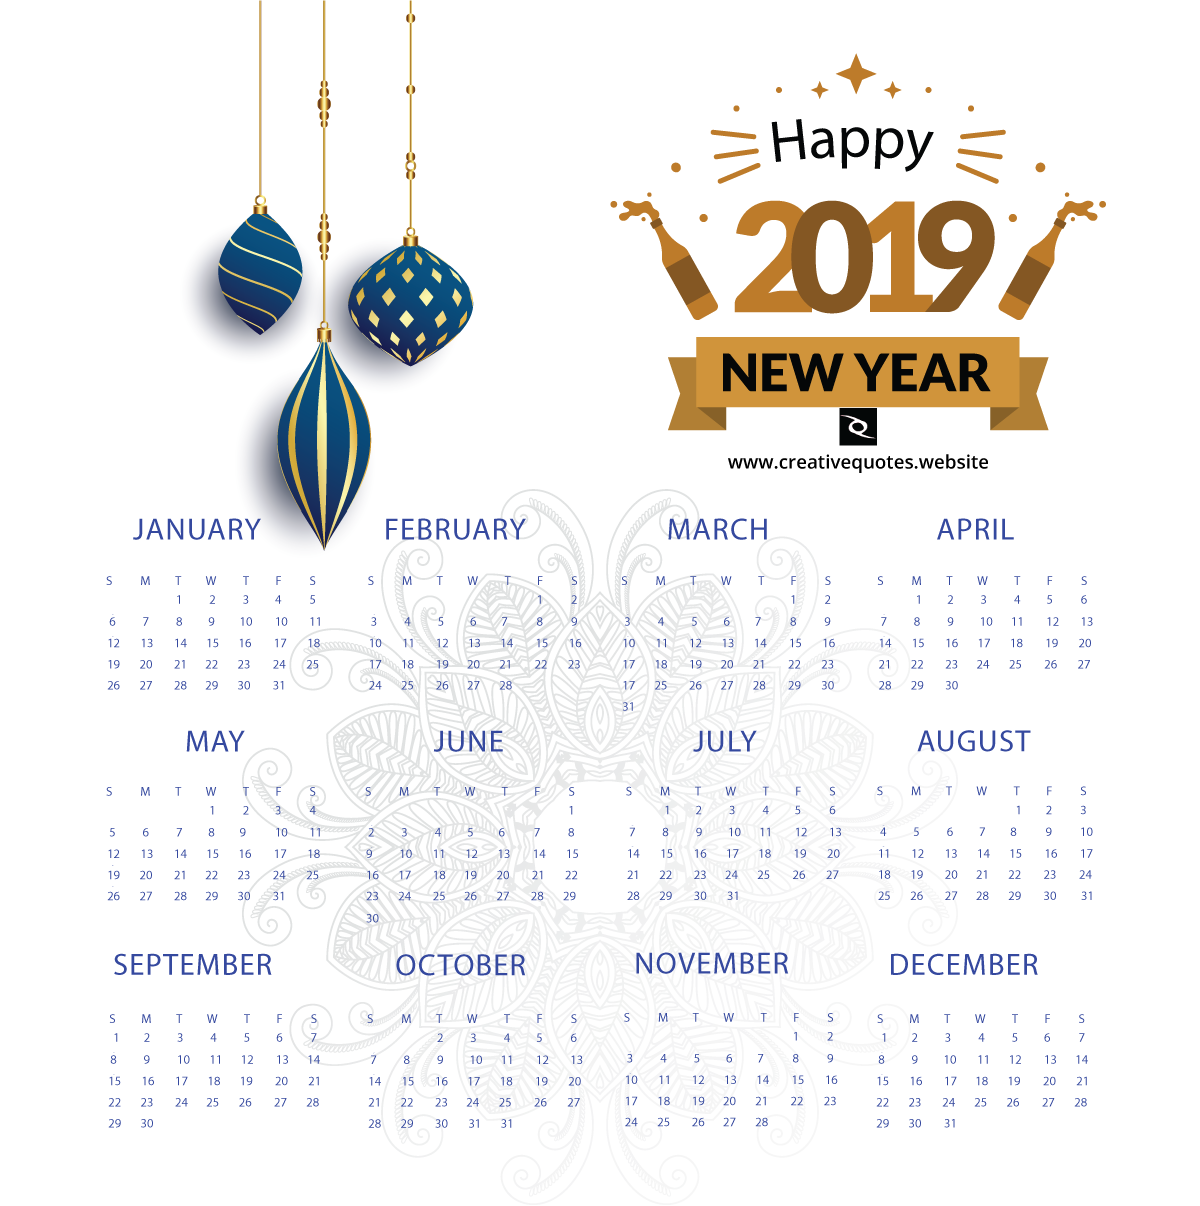 2019 calendar new year wishes calendar